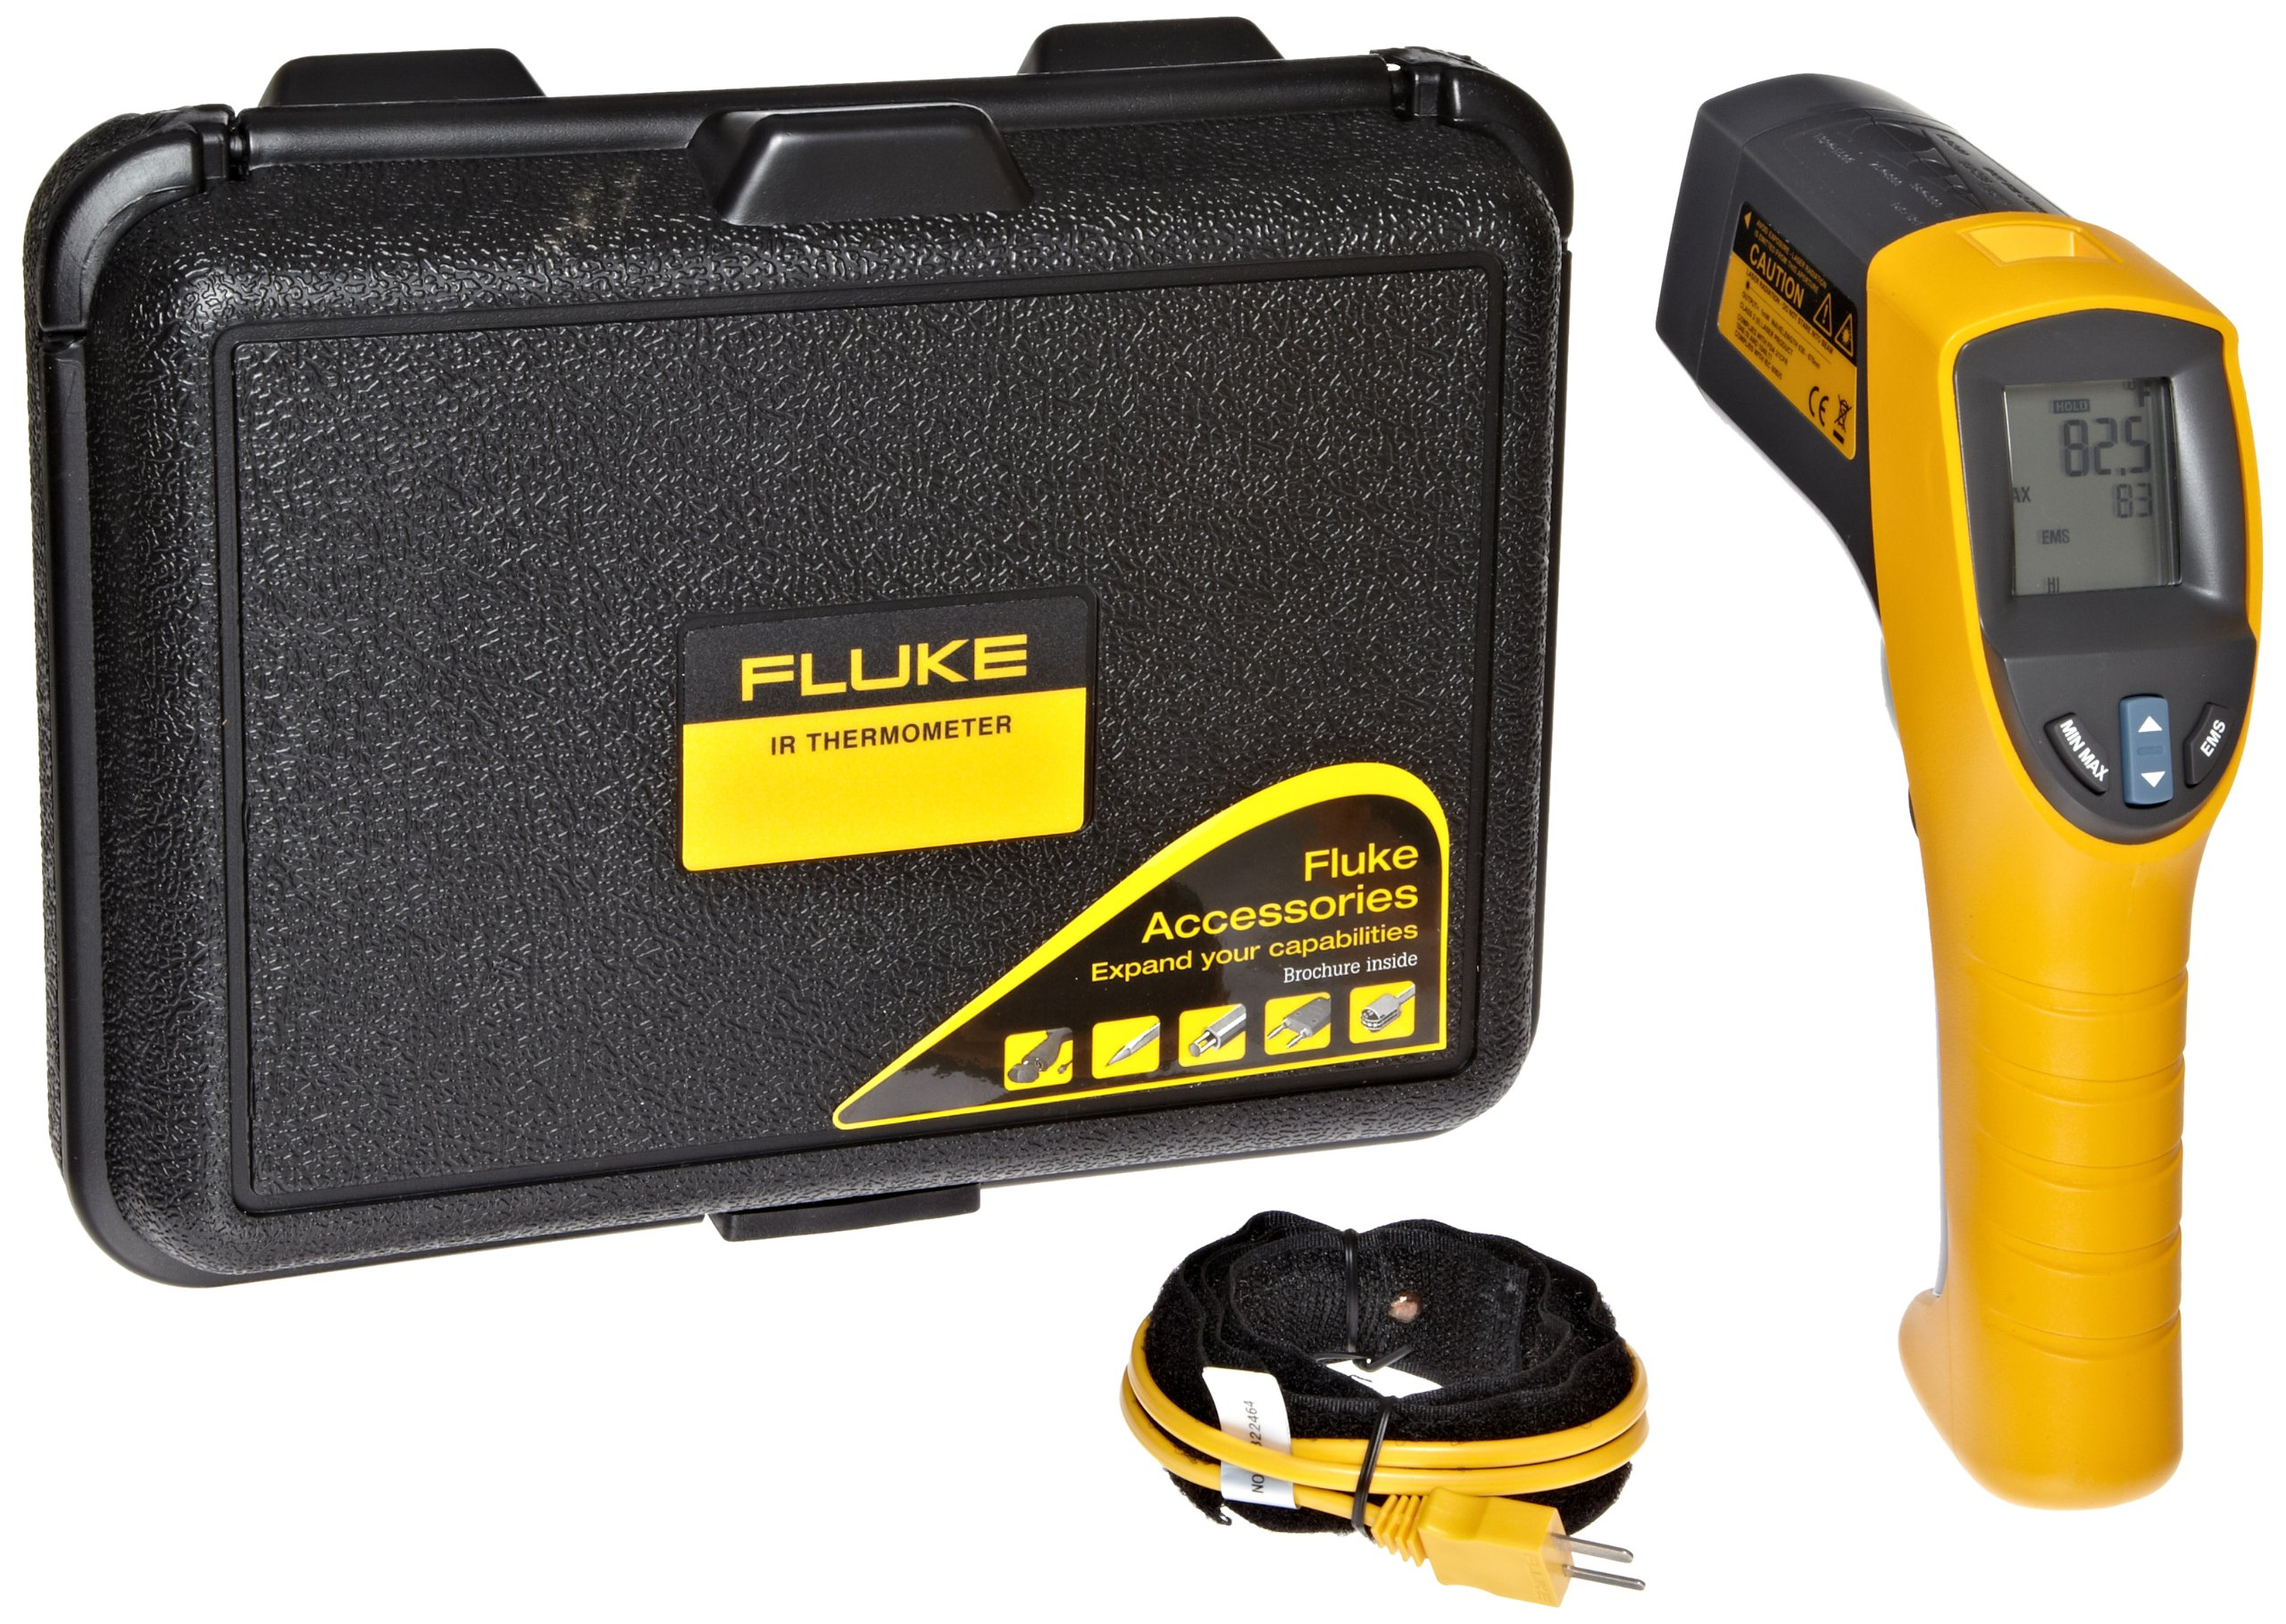 Fluke 561 HVAC Pro Infrared Thermometer, 2 AA Battery, -40 to +1022 Degree F Range with a NIST-Traceable Calibration Certificate with Data